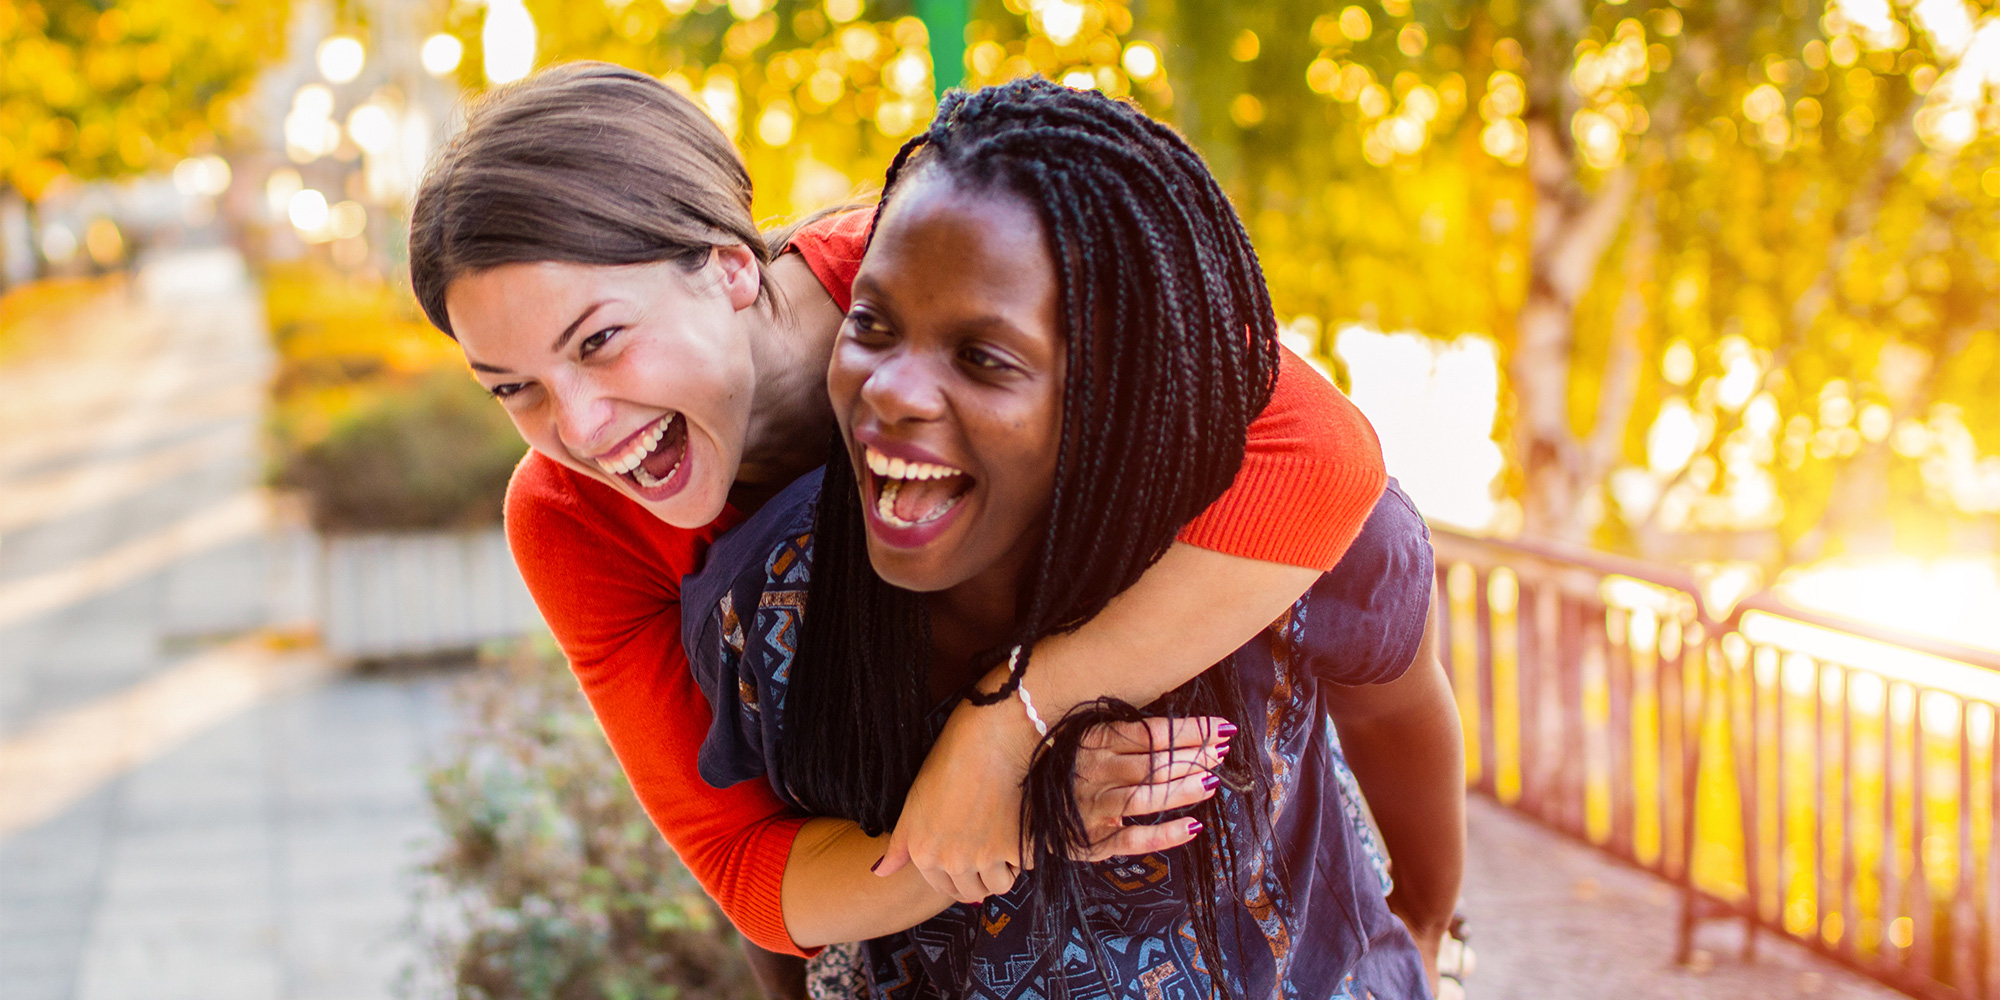 Two women laughing together